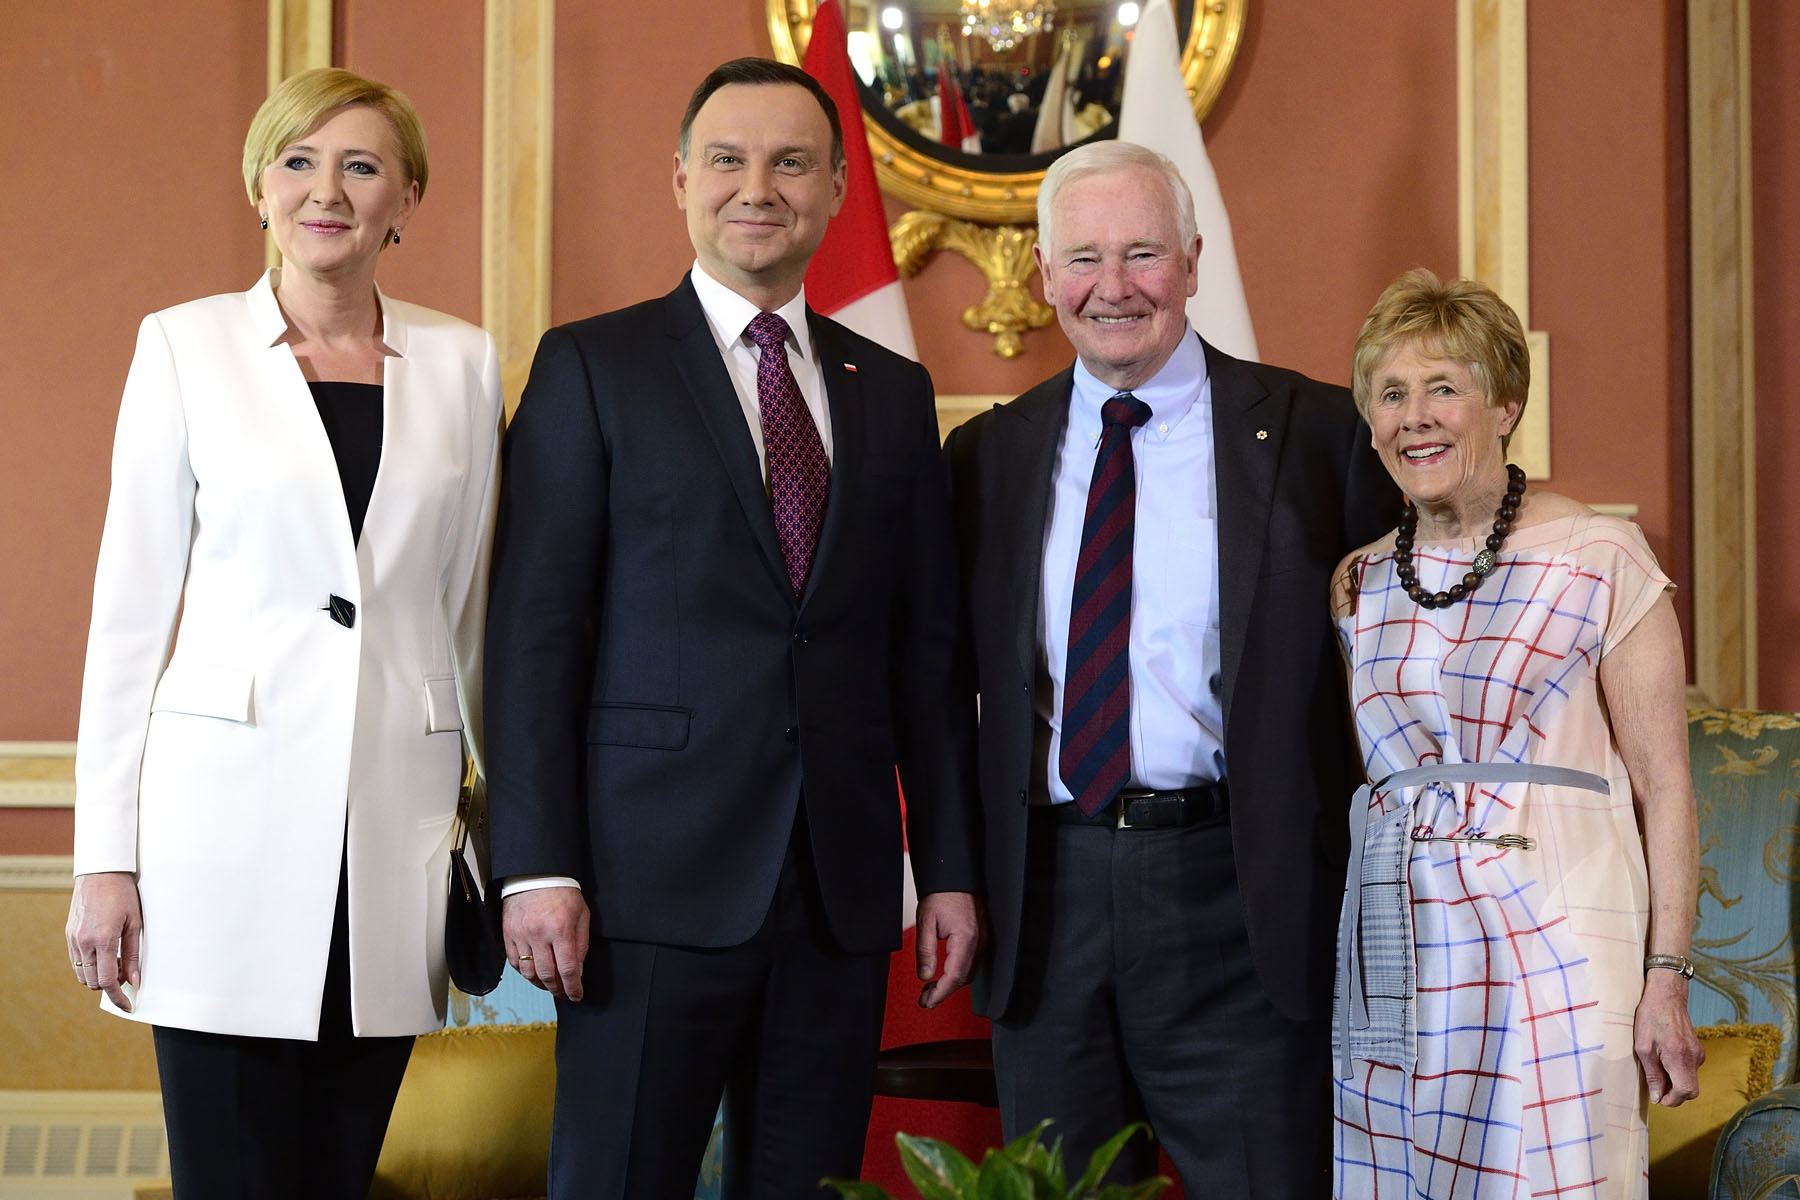 Their Excellencies the Right Honourable David Johnston, Governor General of Canada, and Mrs. Sharon Johnston met with His Excellency Andrzej Duda, President of the Republic of Poland, and Mrs. Agata Kornhauser-Duda at Rideau Hall, on May 11, 2016.